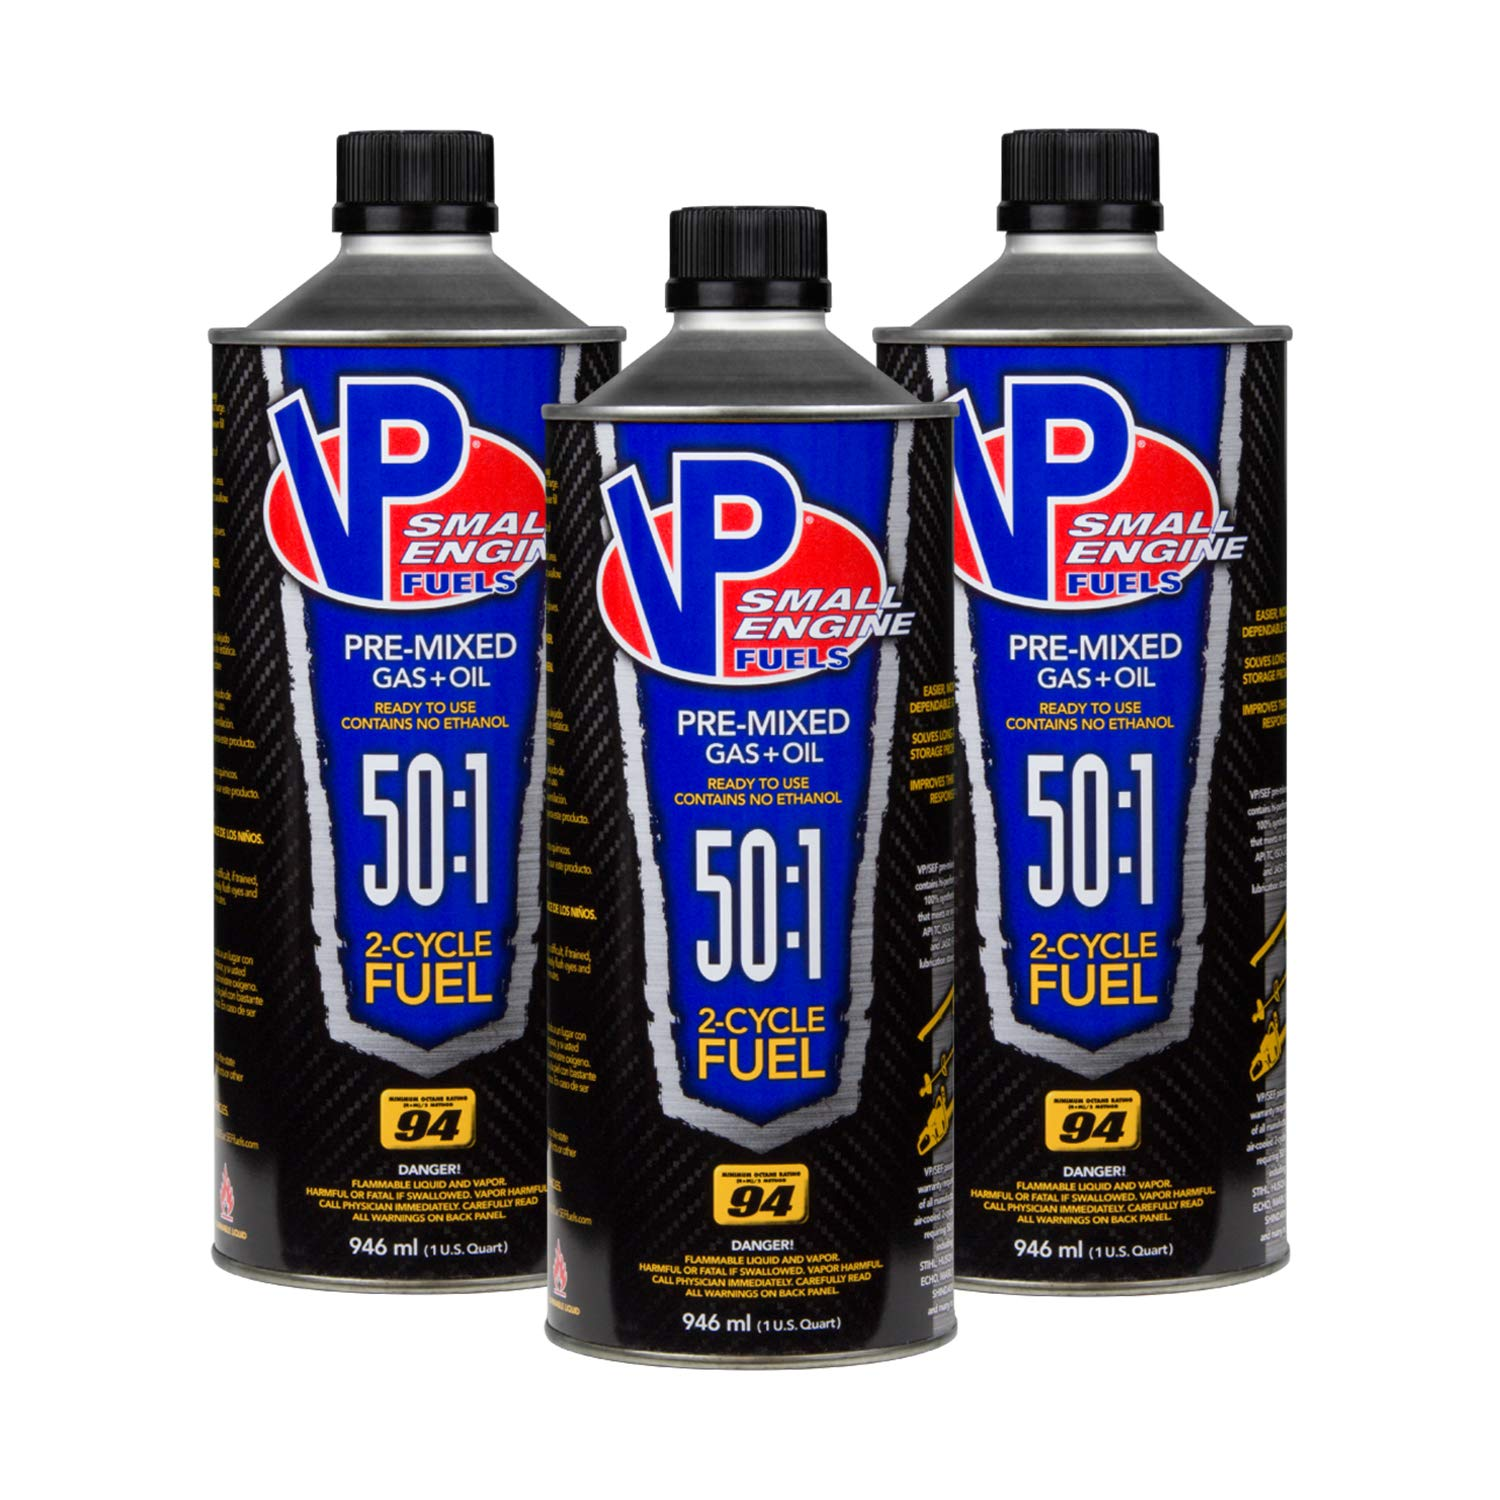 VP Racing Fuels 6235 50:1 SEF 2 Cycle Pre-Mixed Gas + Oil Fuel, Ready to Use, 3 Quarts